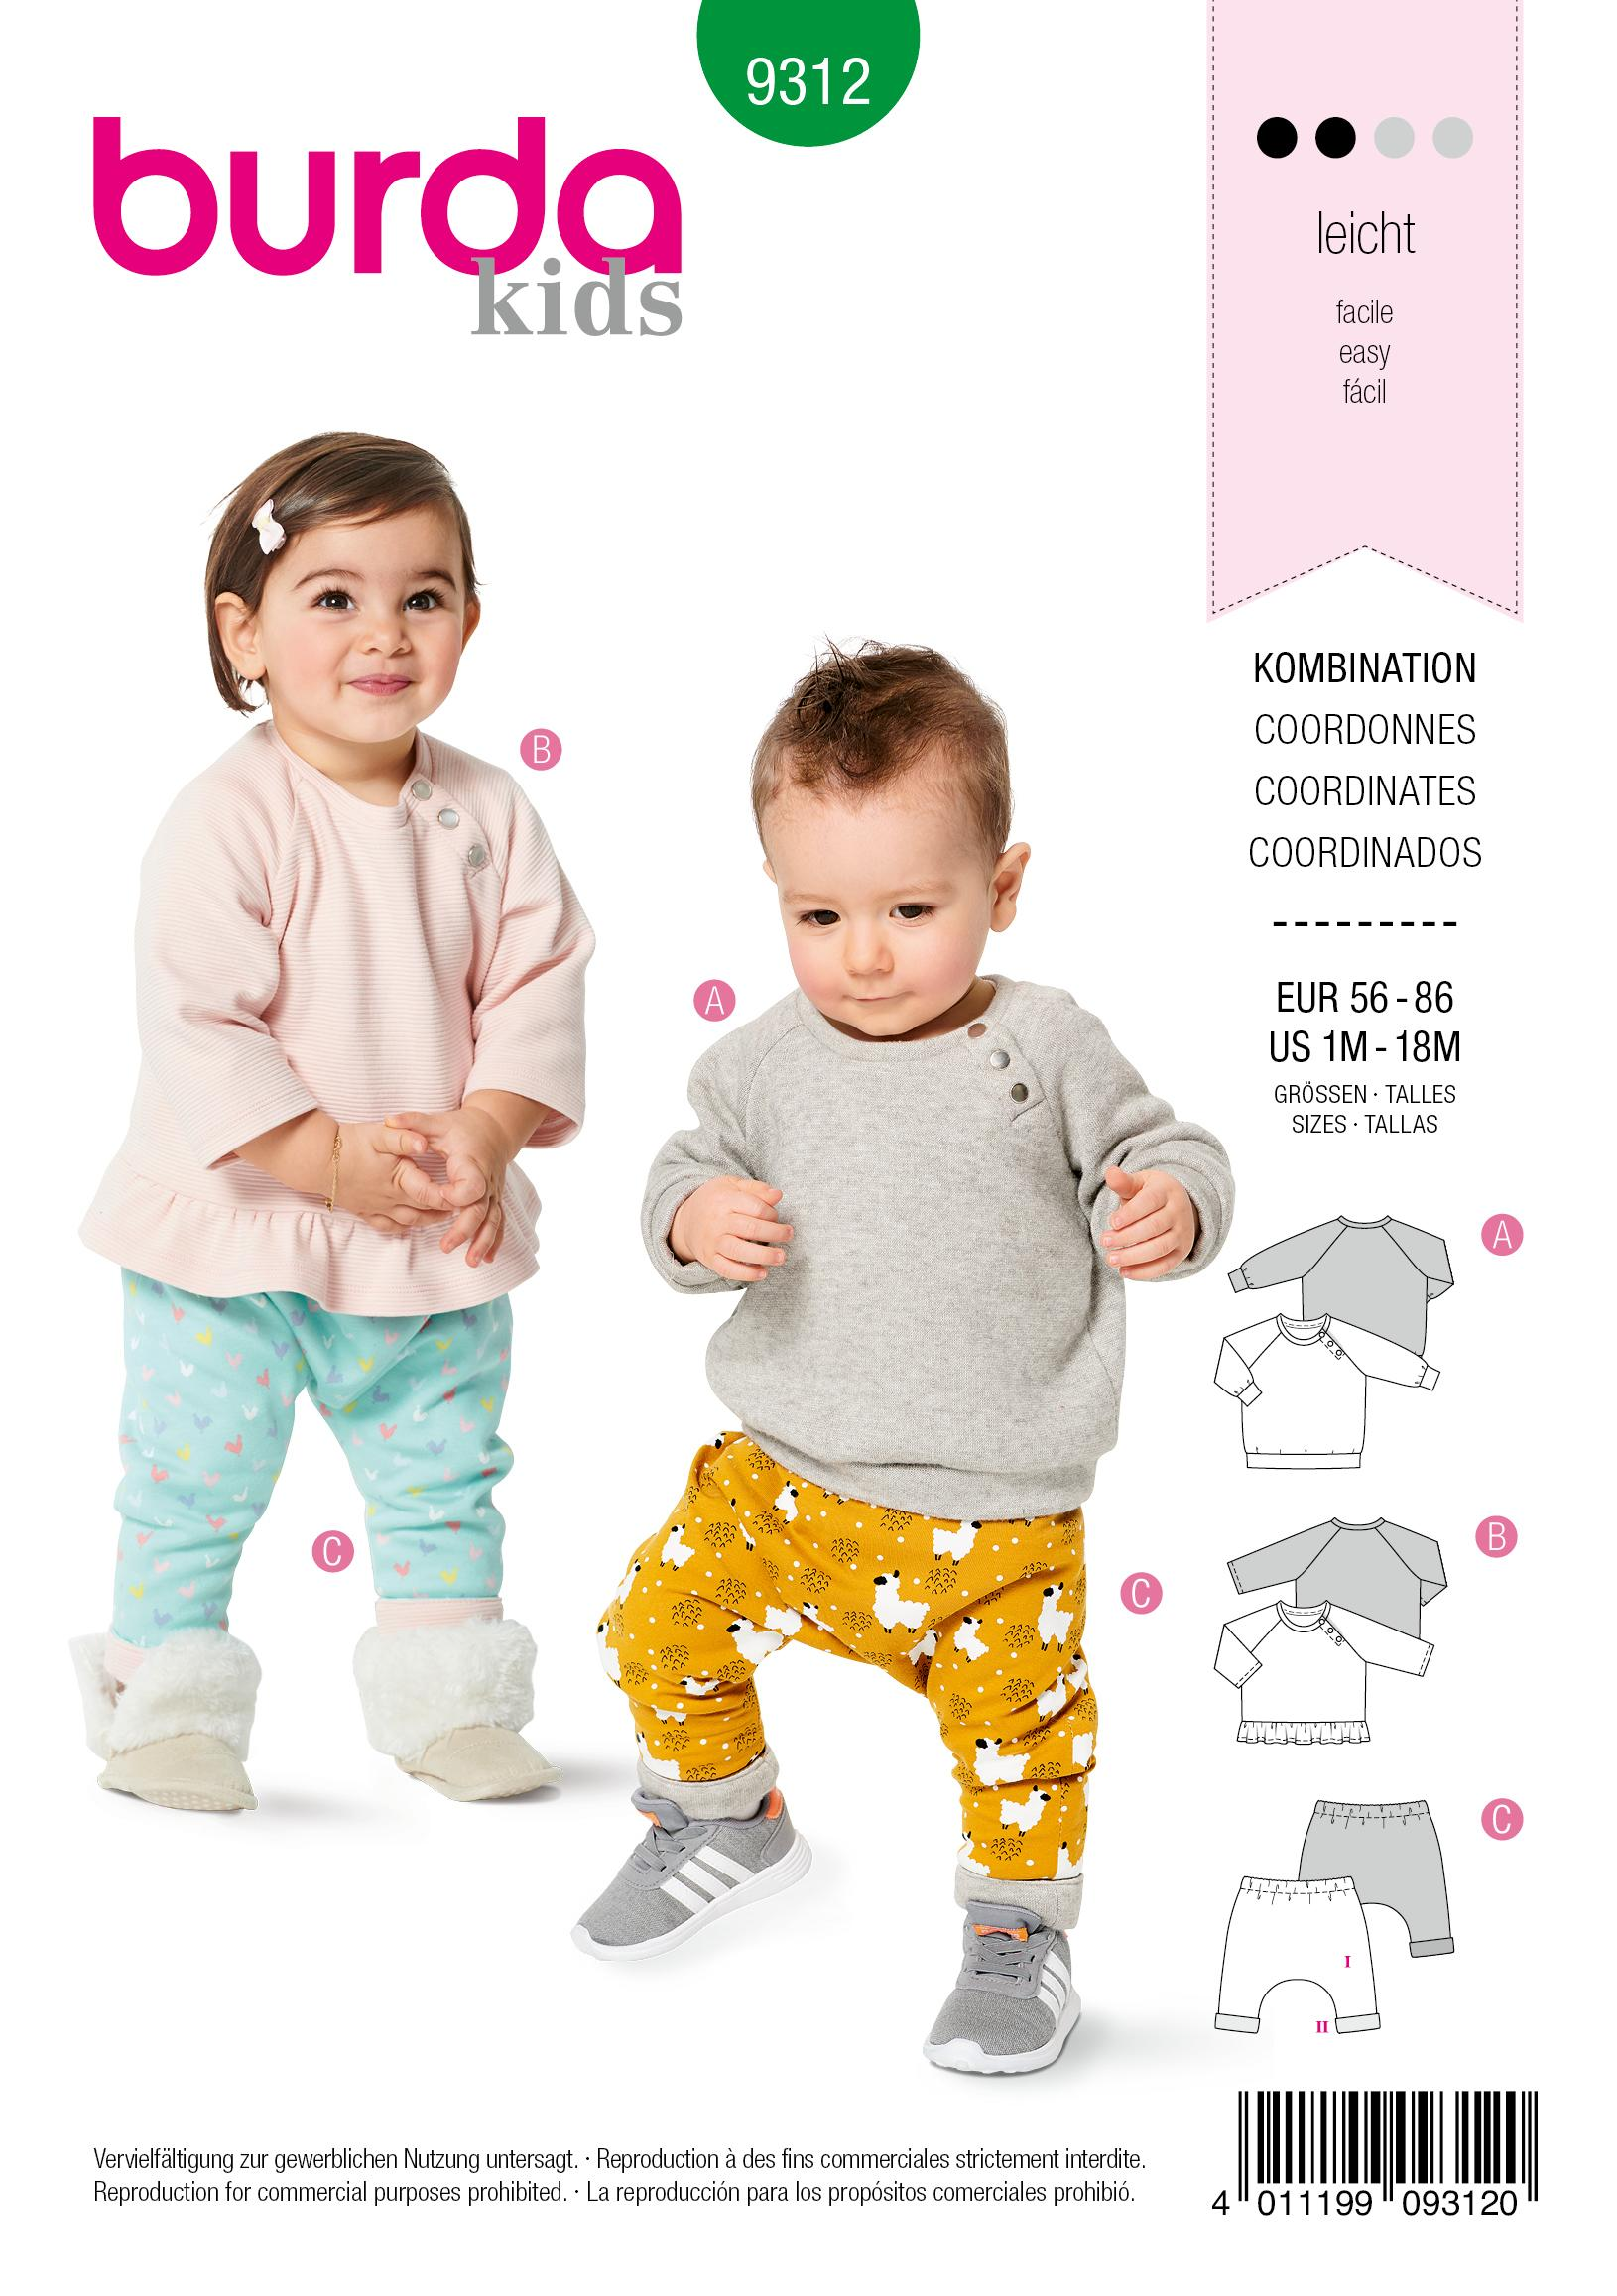 Burda 9312 Babies' Coordinates, Pull-On Top and Pants